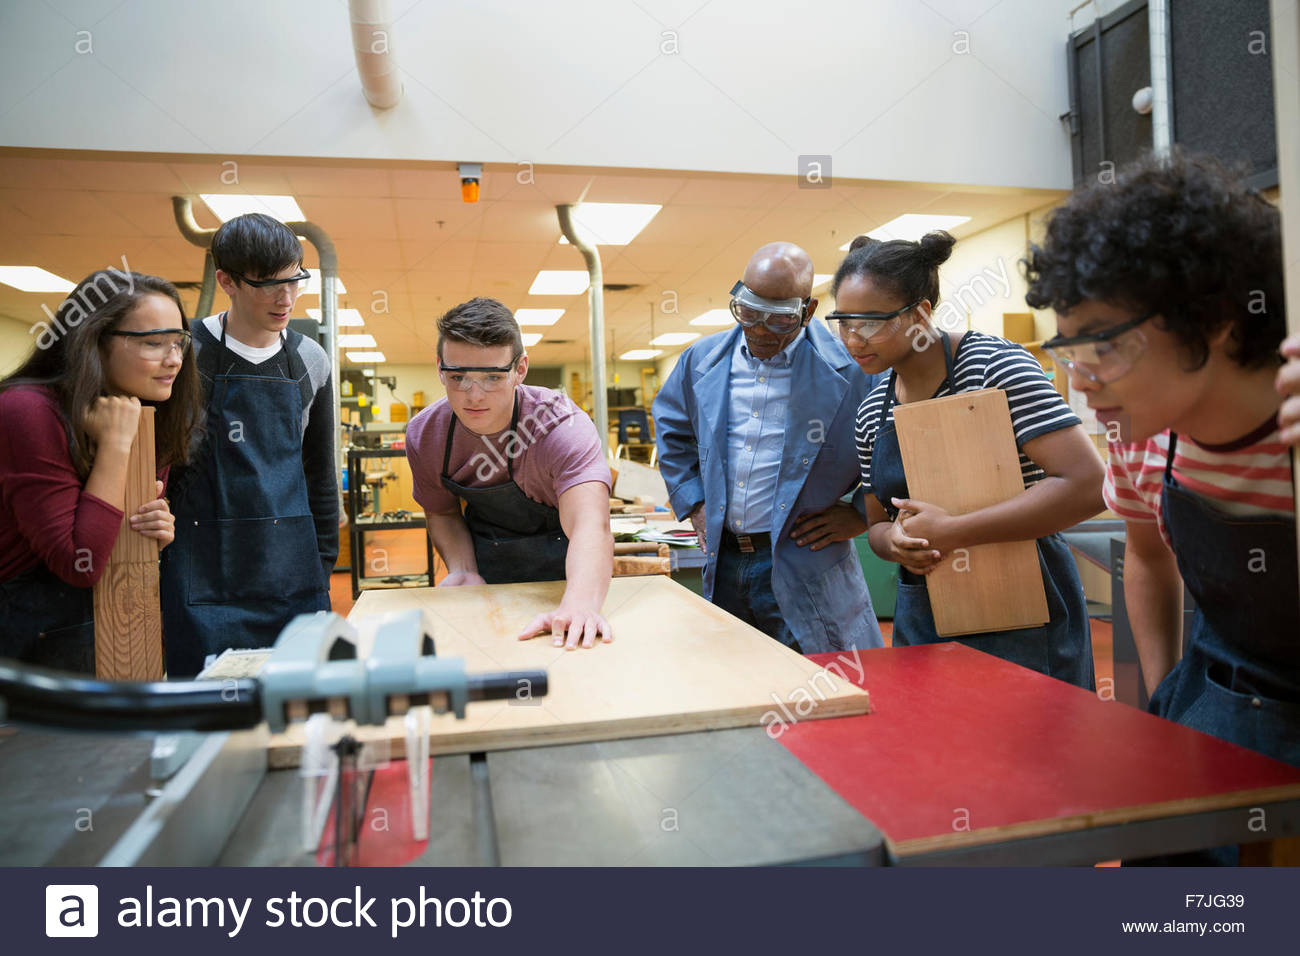 High school students watching classmate at woodcutting machine - Stock Image